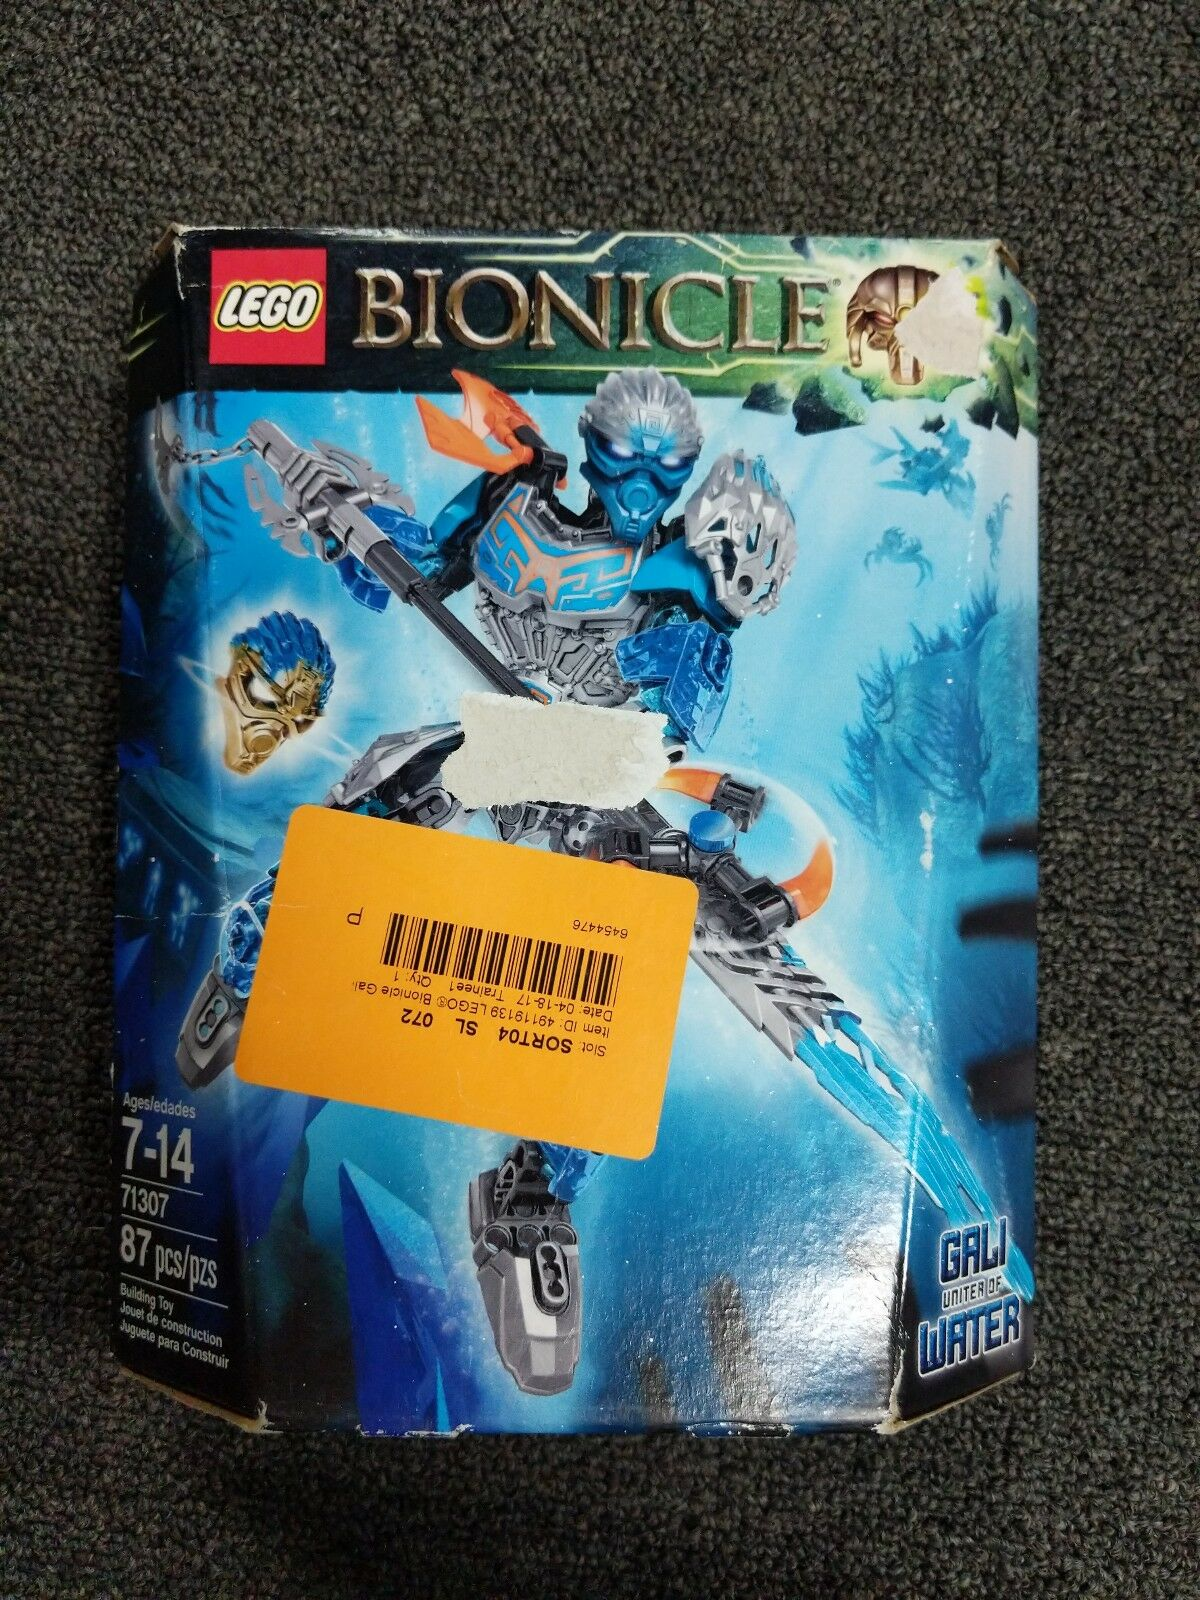 LEGO Bionicle Gali Uniter of Water 71307 NEW, SEALED,  Discontinued